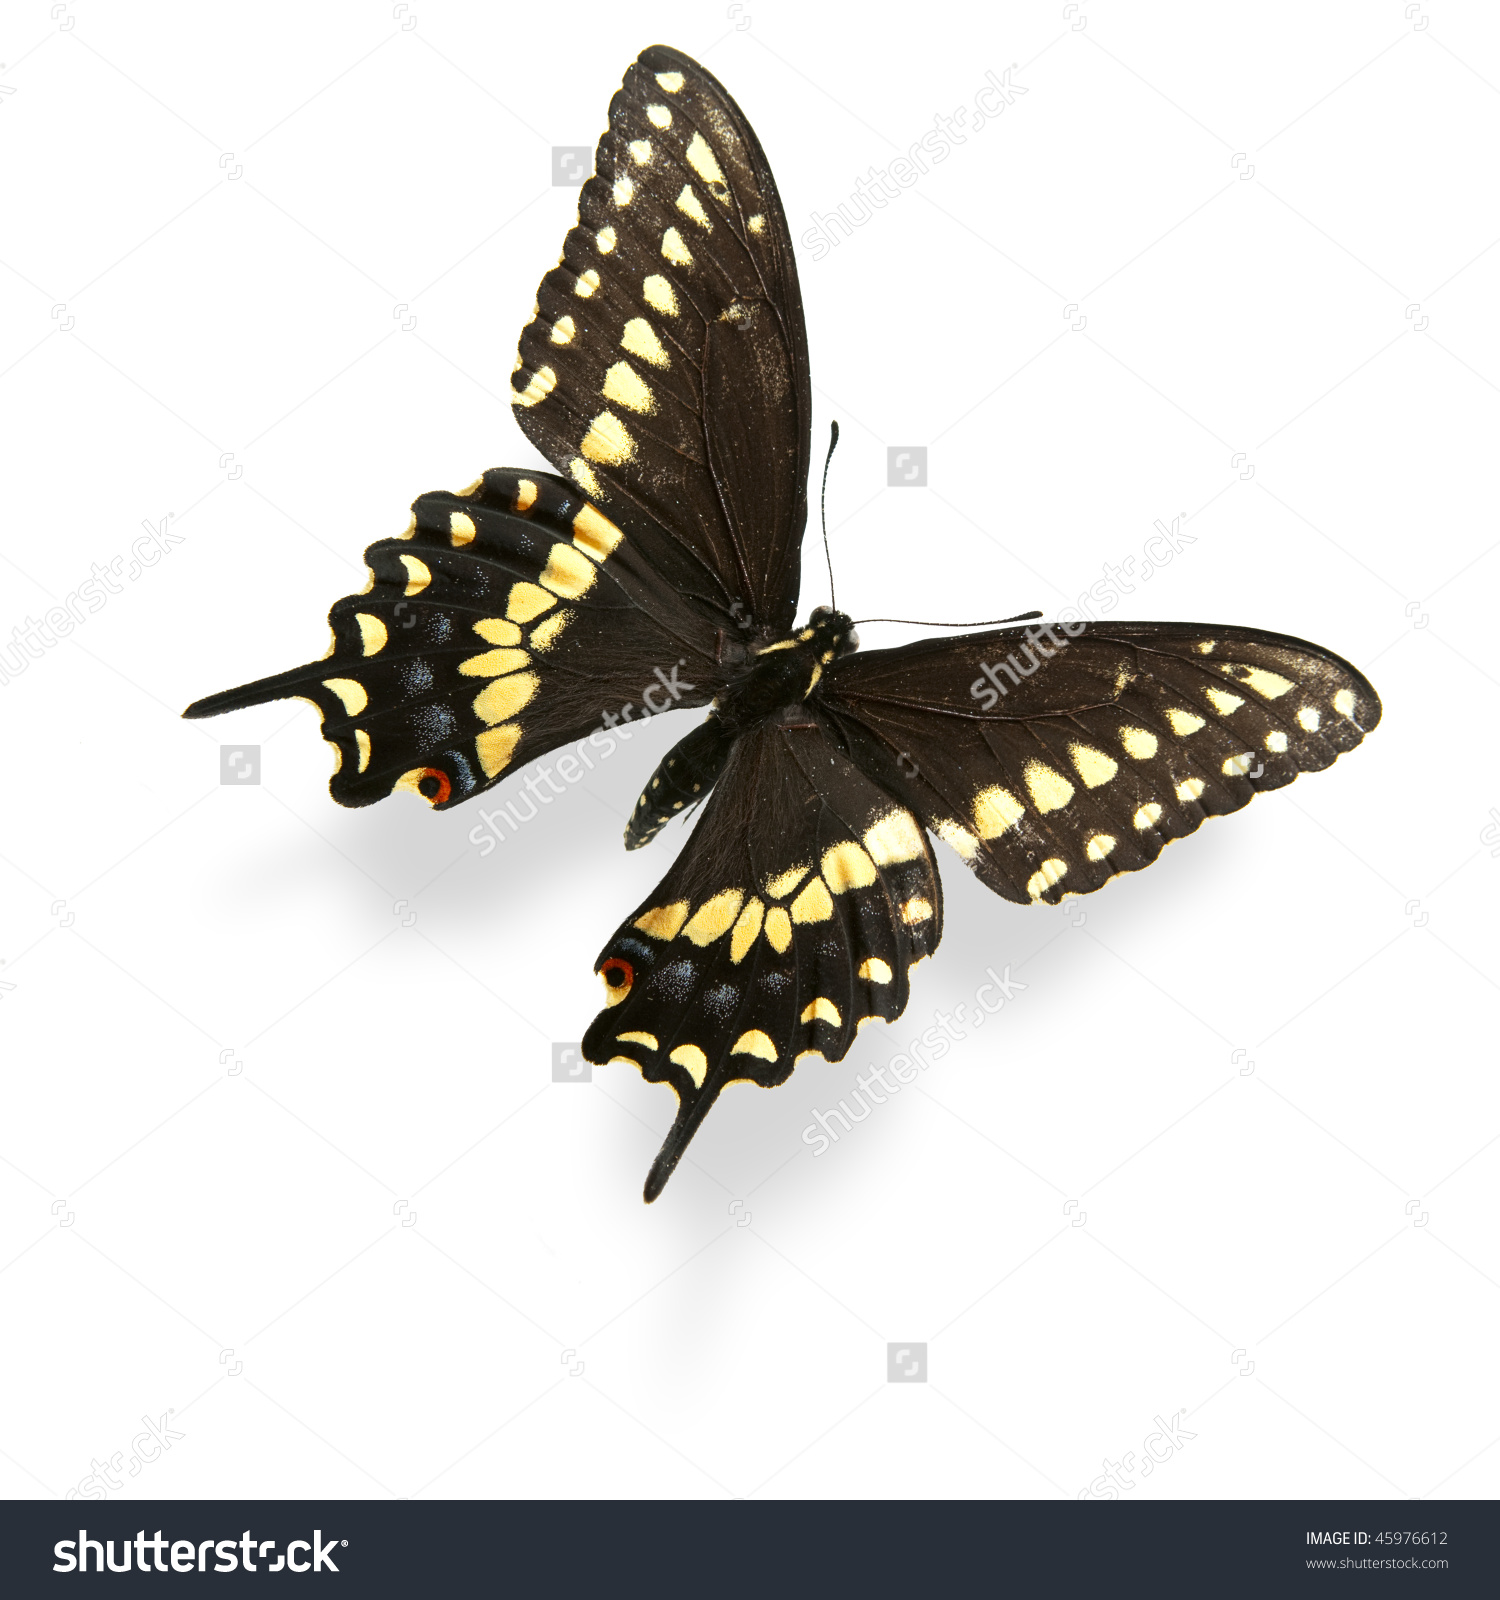 Yellow And Black Swallowtail Butterfly Isolated On White. Critical.